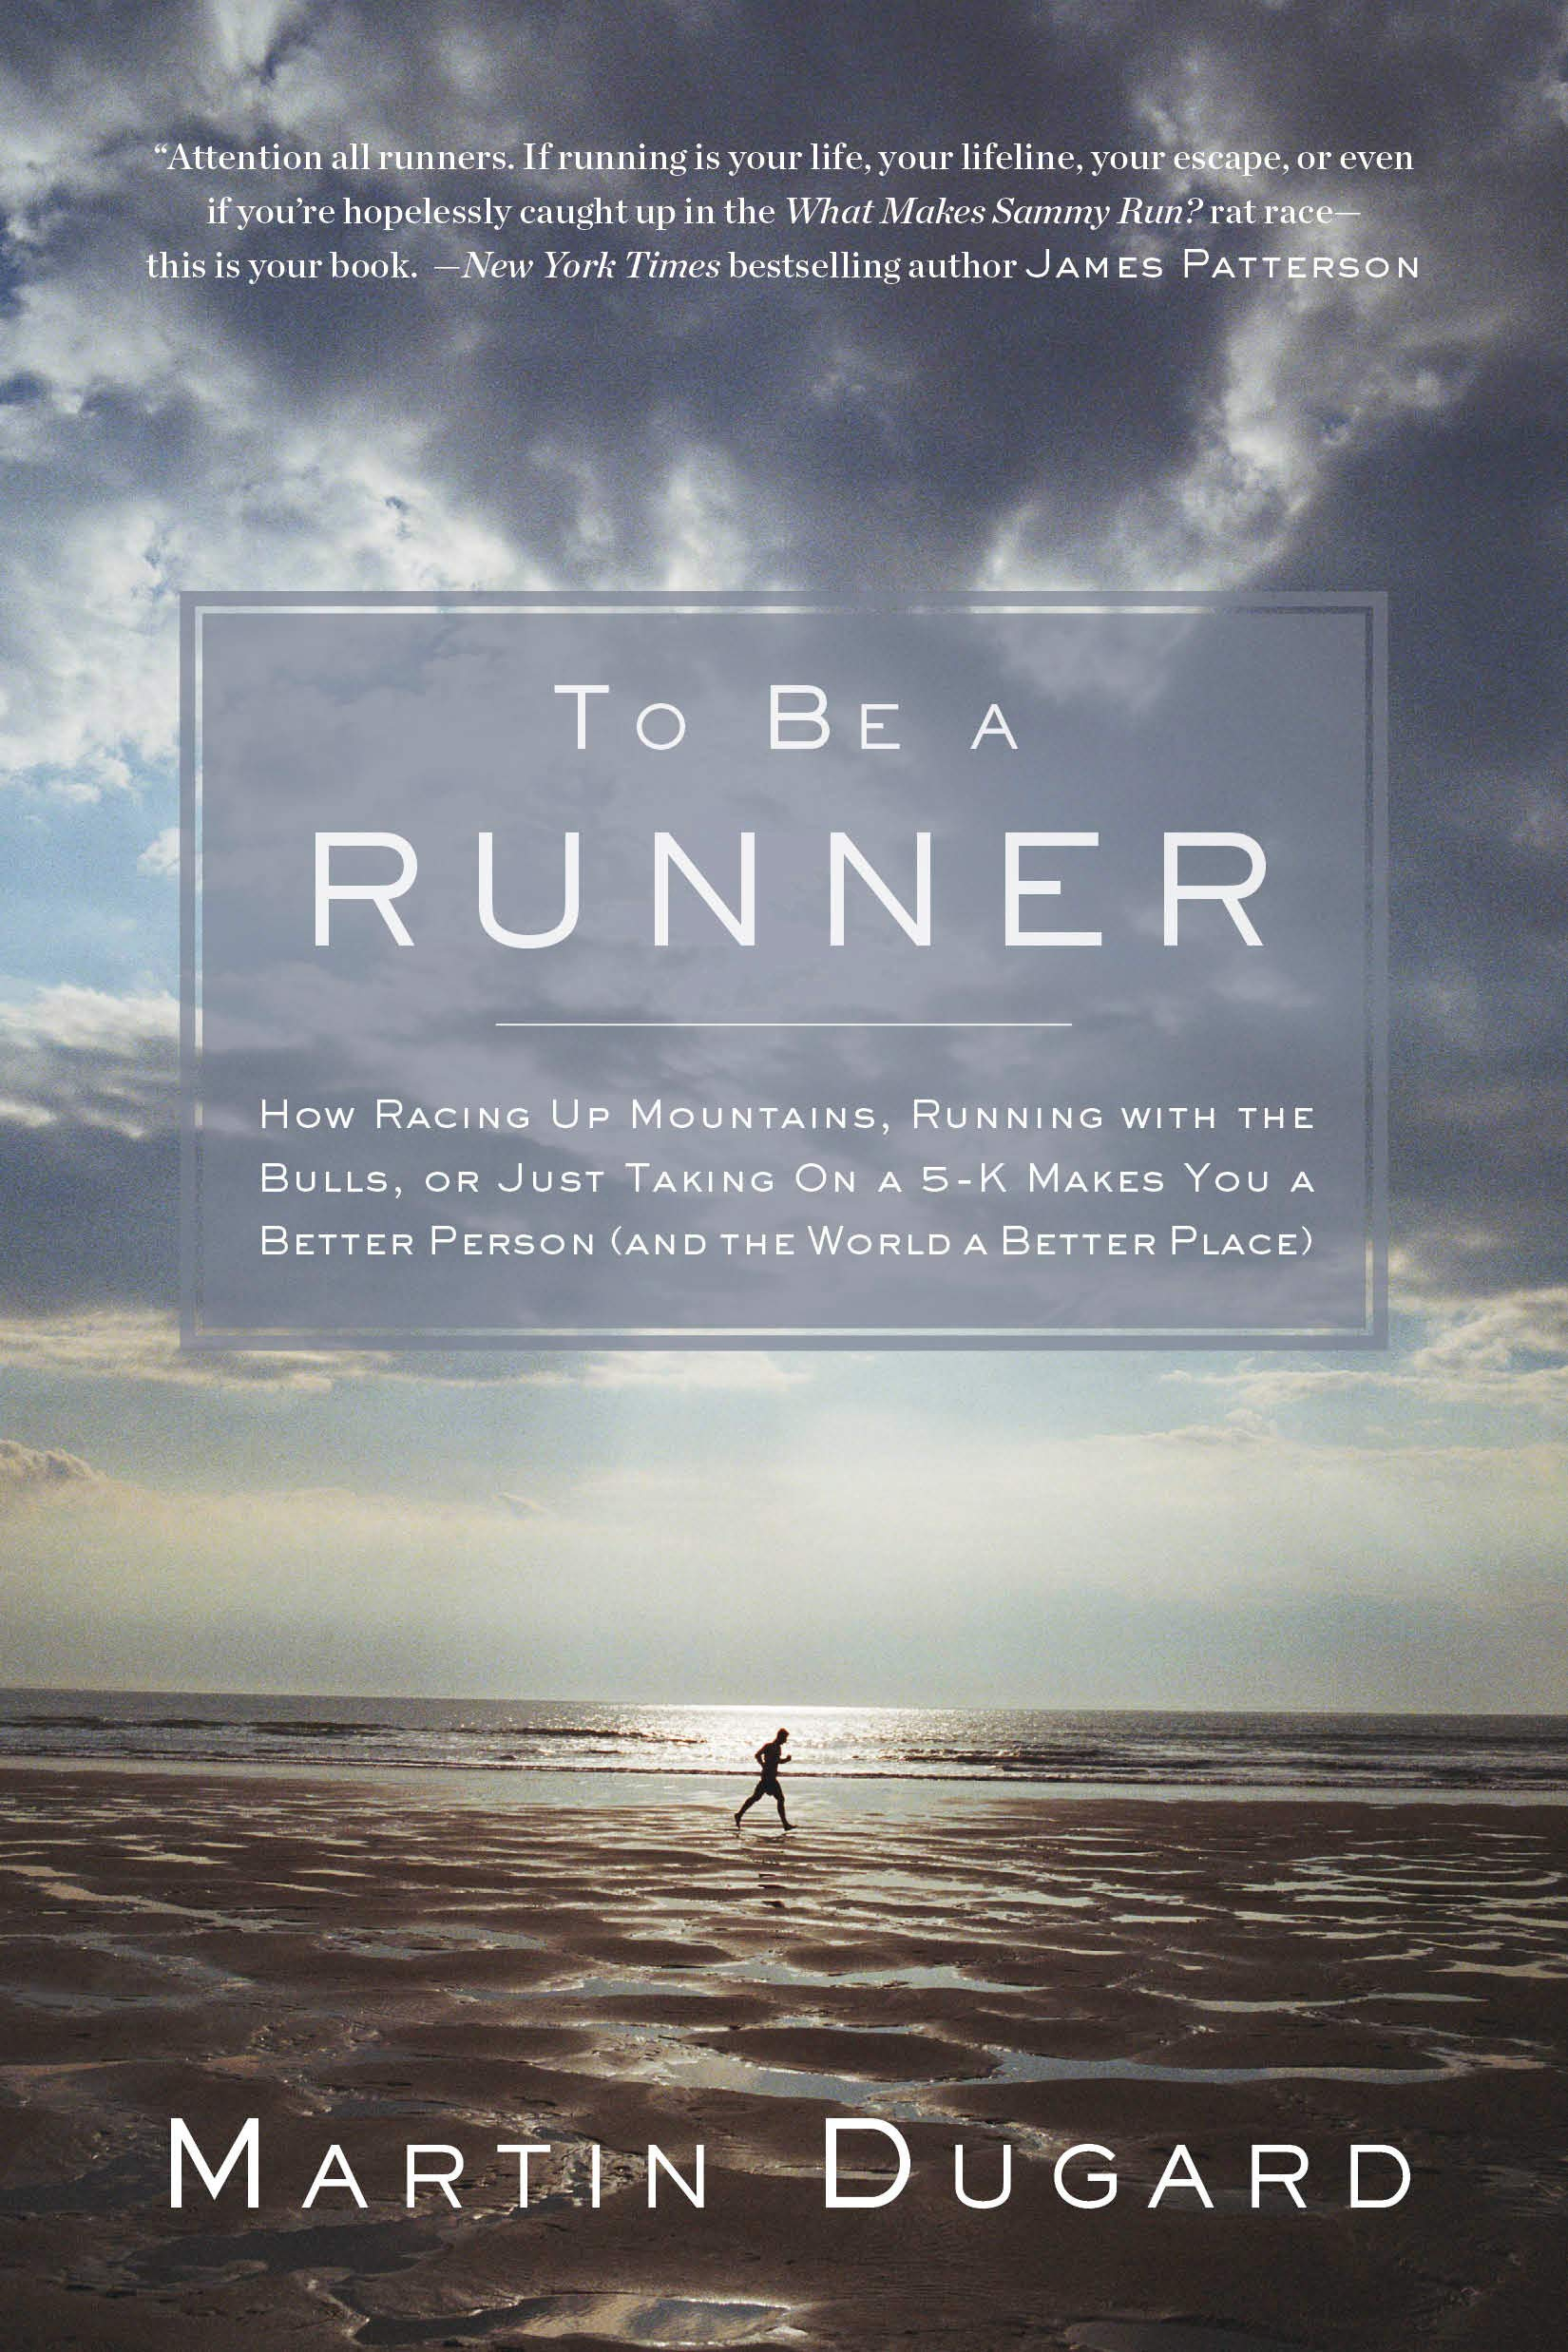 To Be a Runner: How Racing Up Mountains, Running with the Bulls, or Just Taking on a 5 K Makes You a Better Person and the...